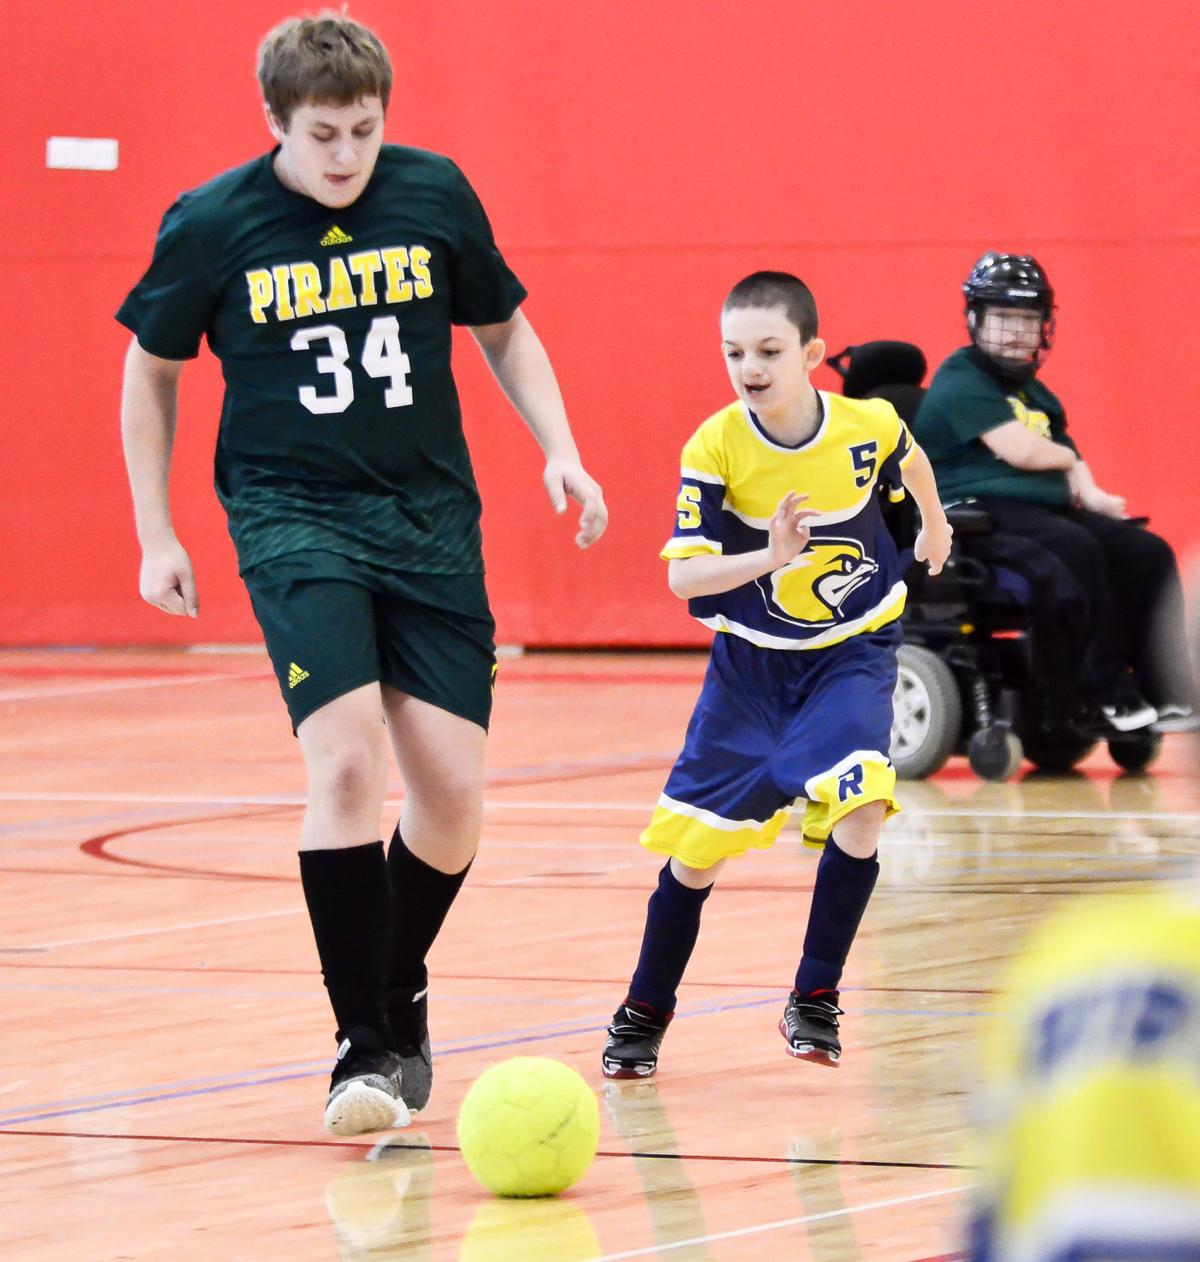 p1 spt pac oss adapted soccer PI gilbertson